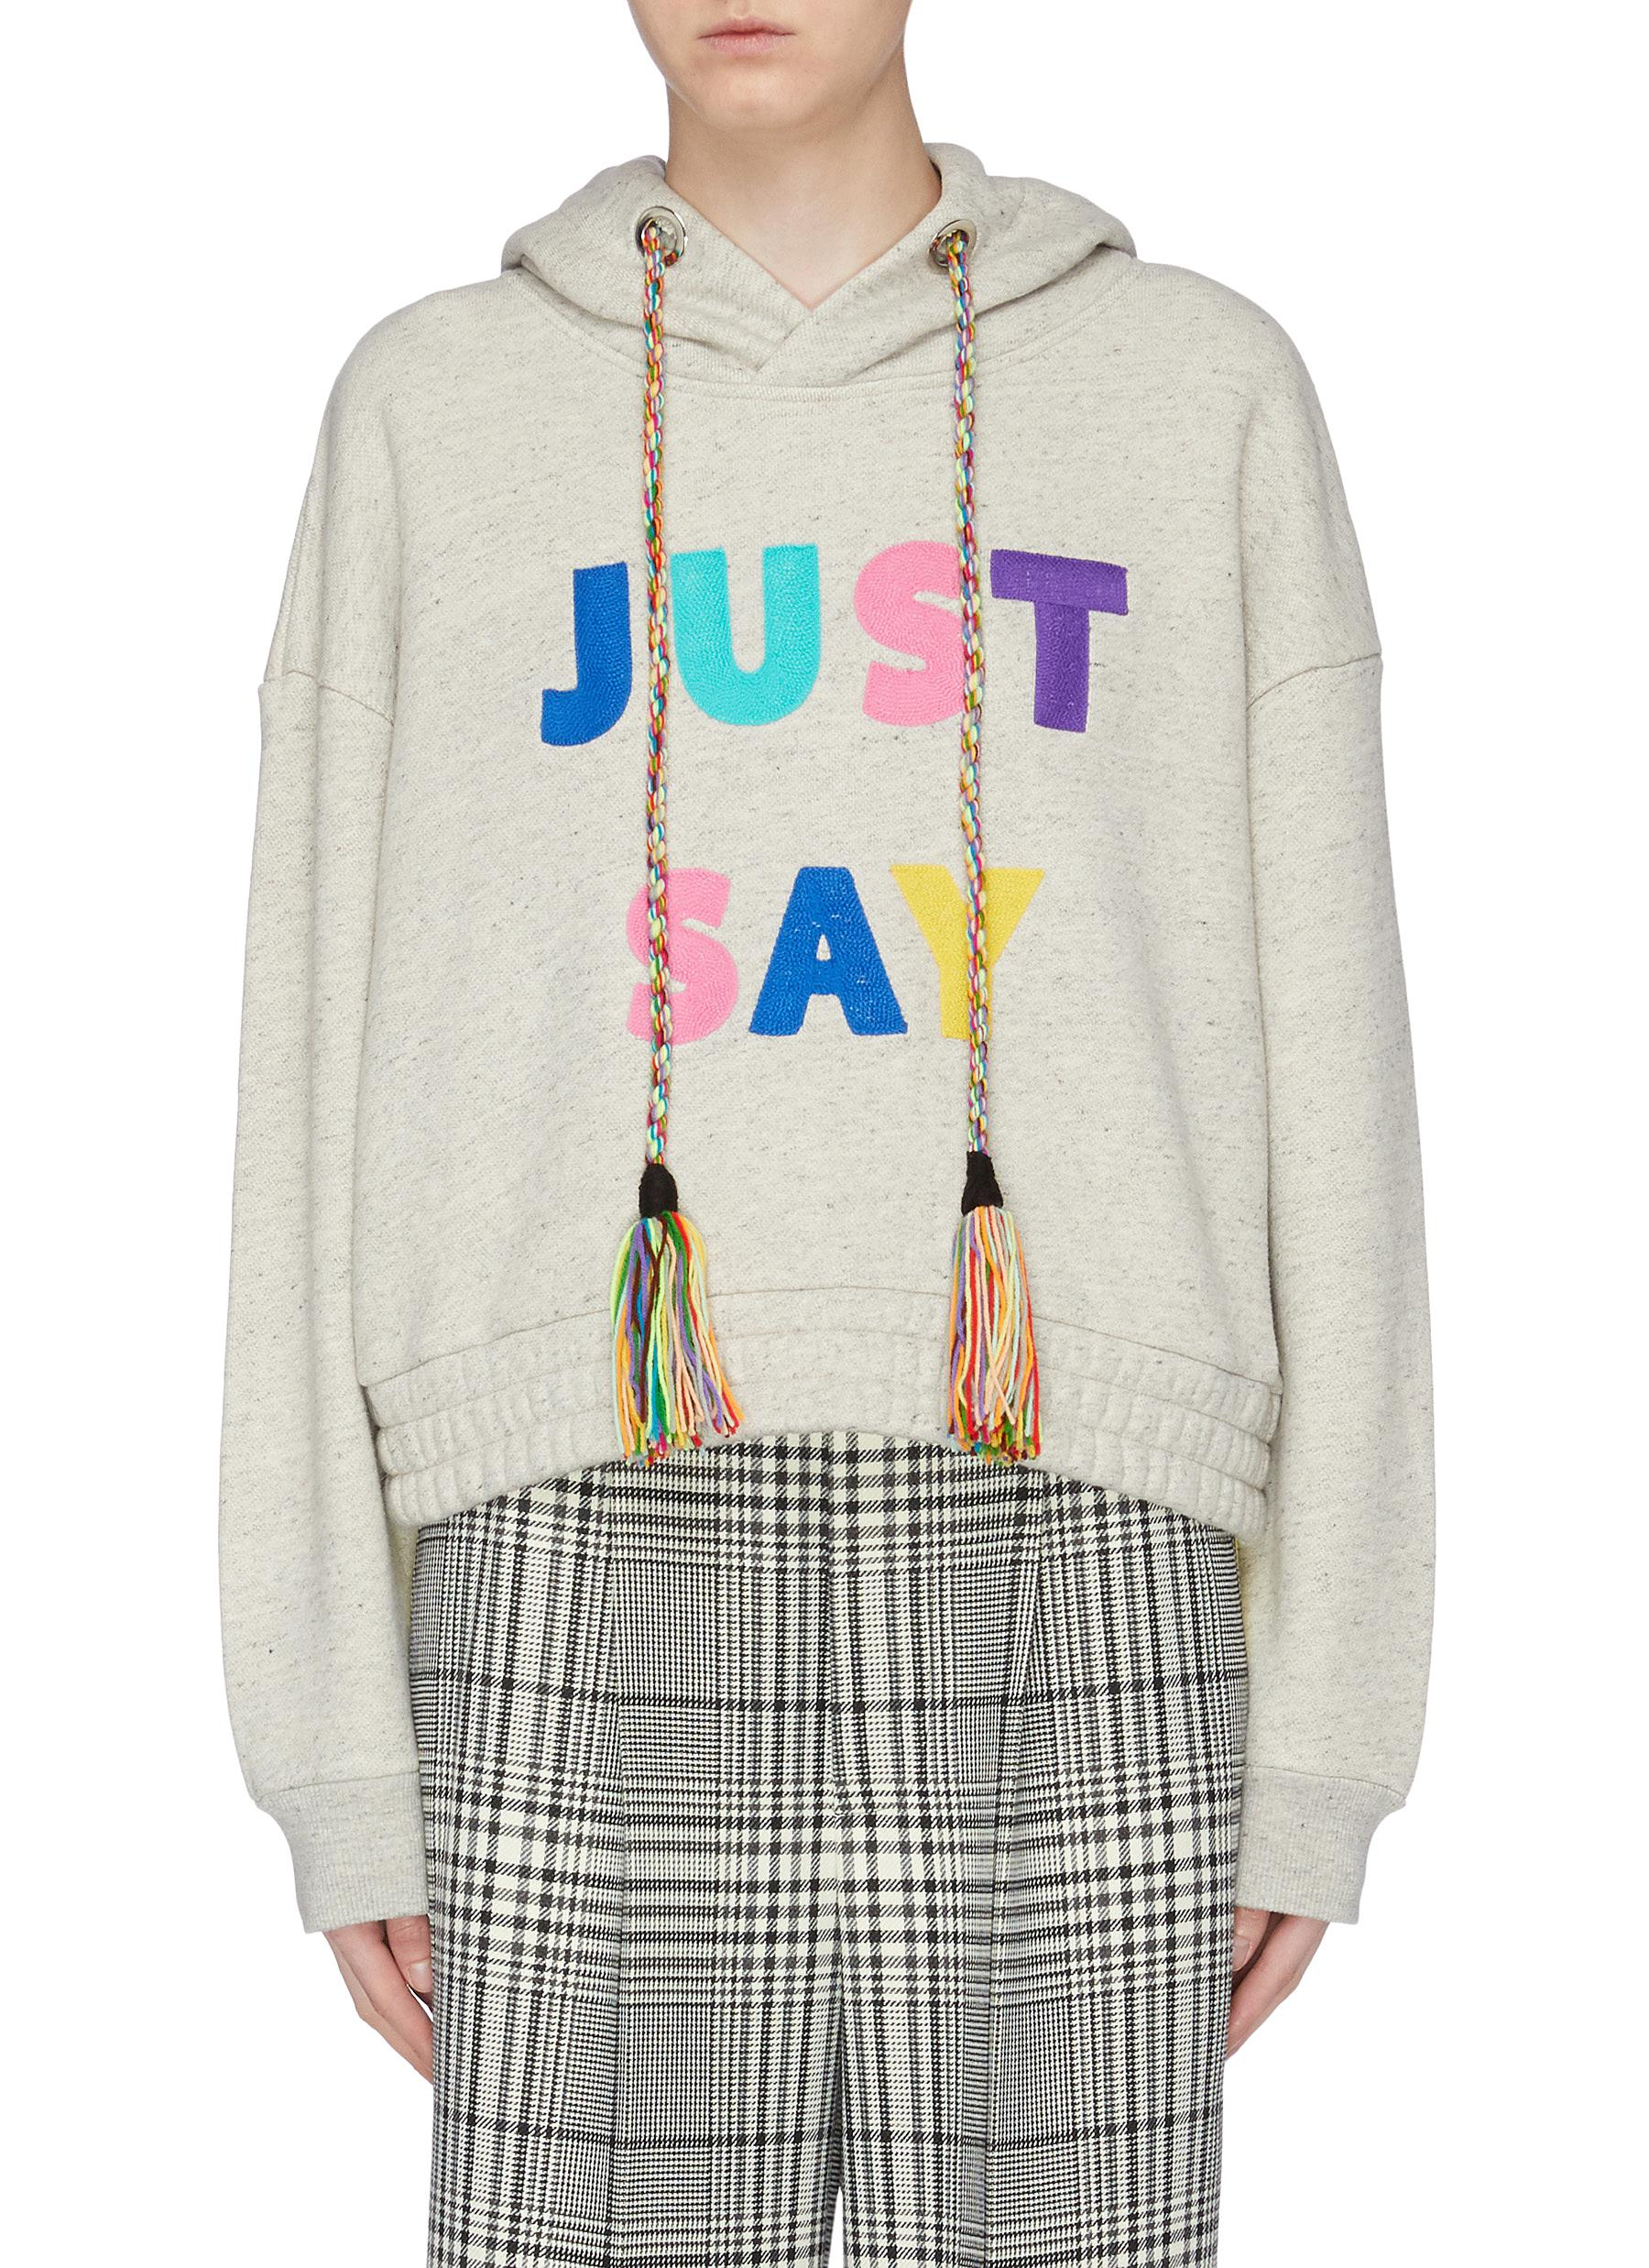 Just Say slogan patch hoodie by Mira Mikati